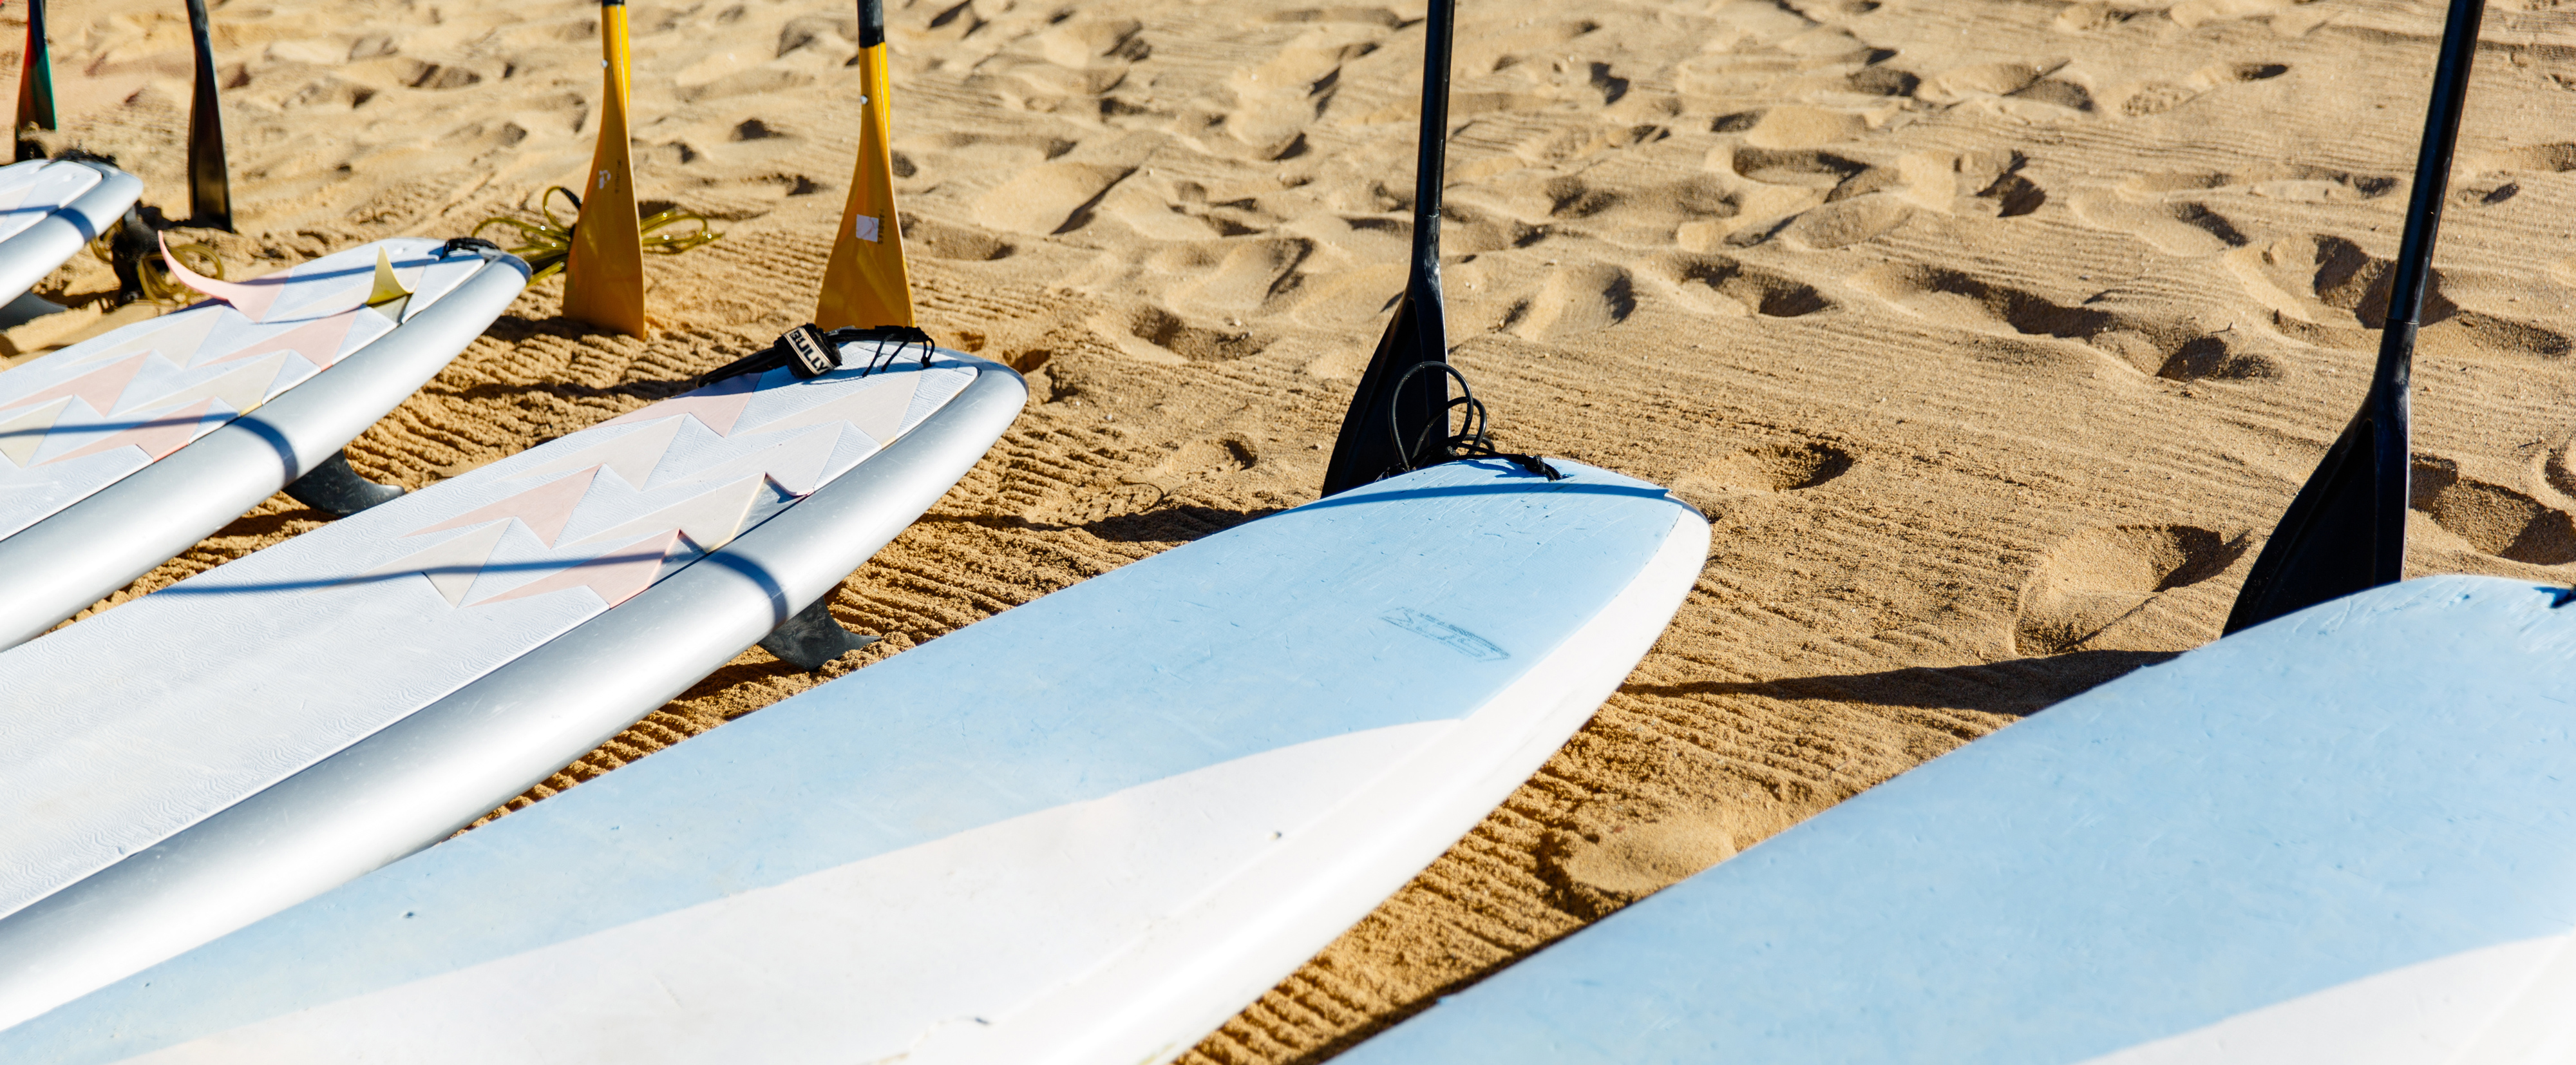 Five paddleboards lined up with their oars standing upright in the sand